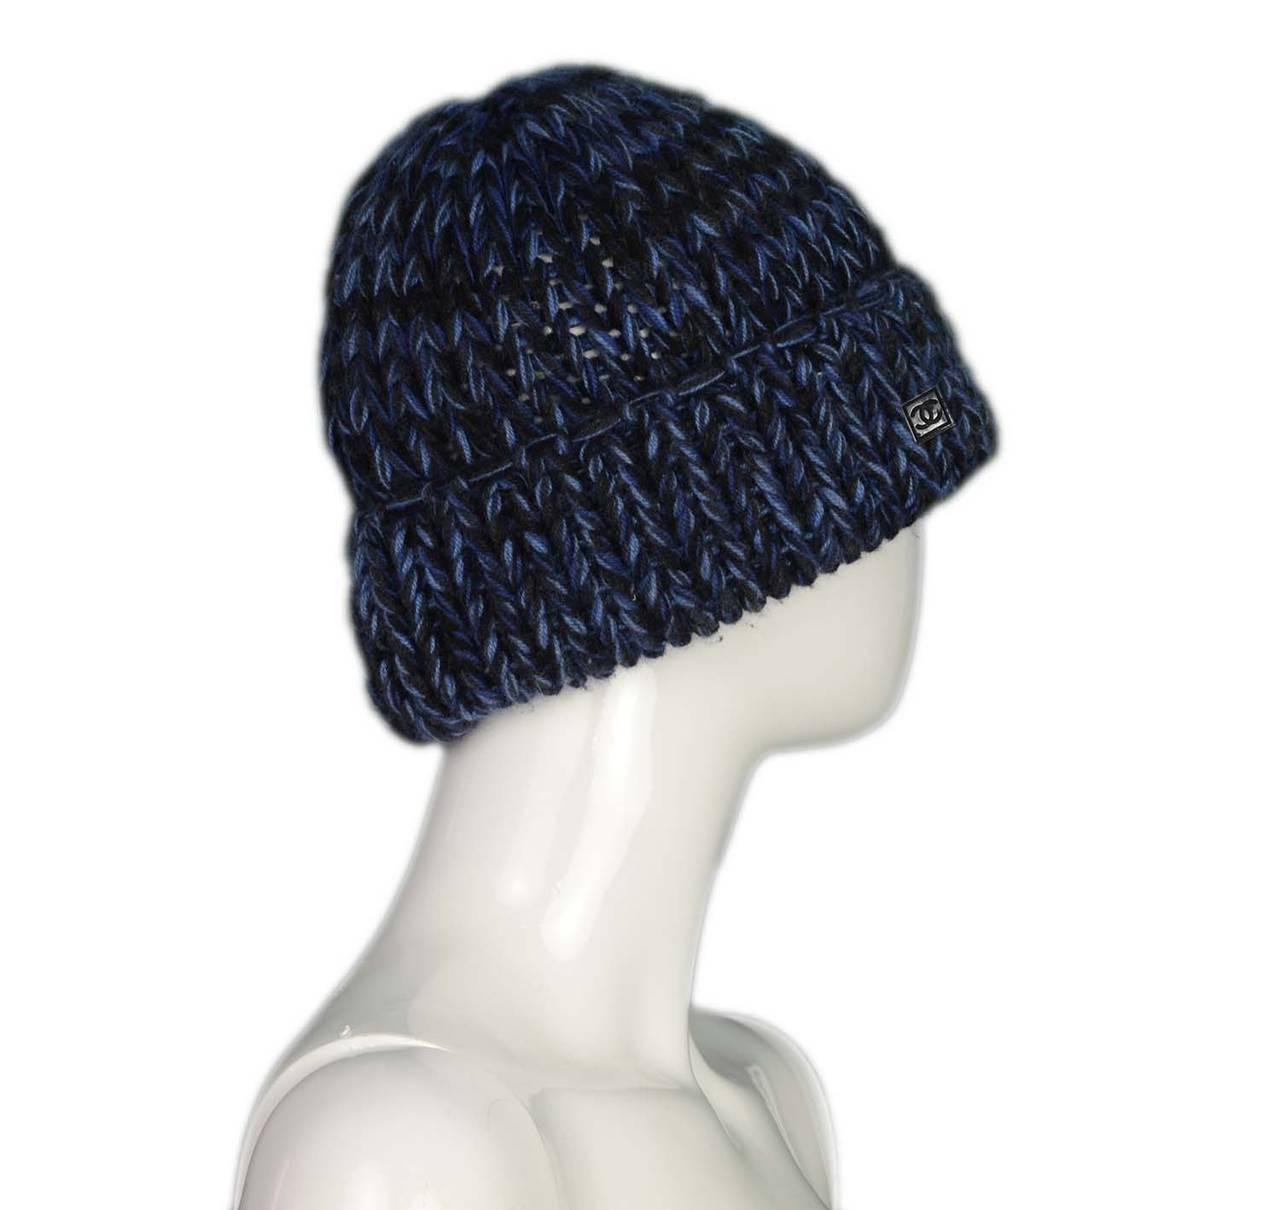 CHANEL Blue/Black Chunky Cashmere Knit Beanie Hat at 1stdibs